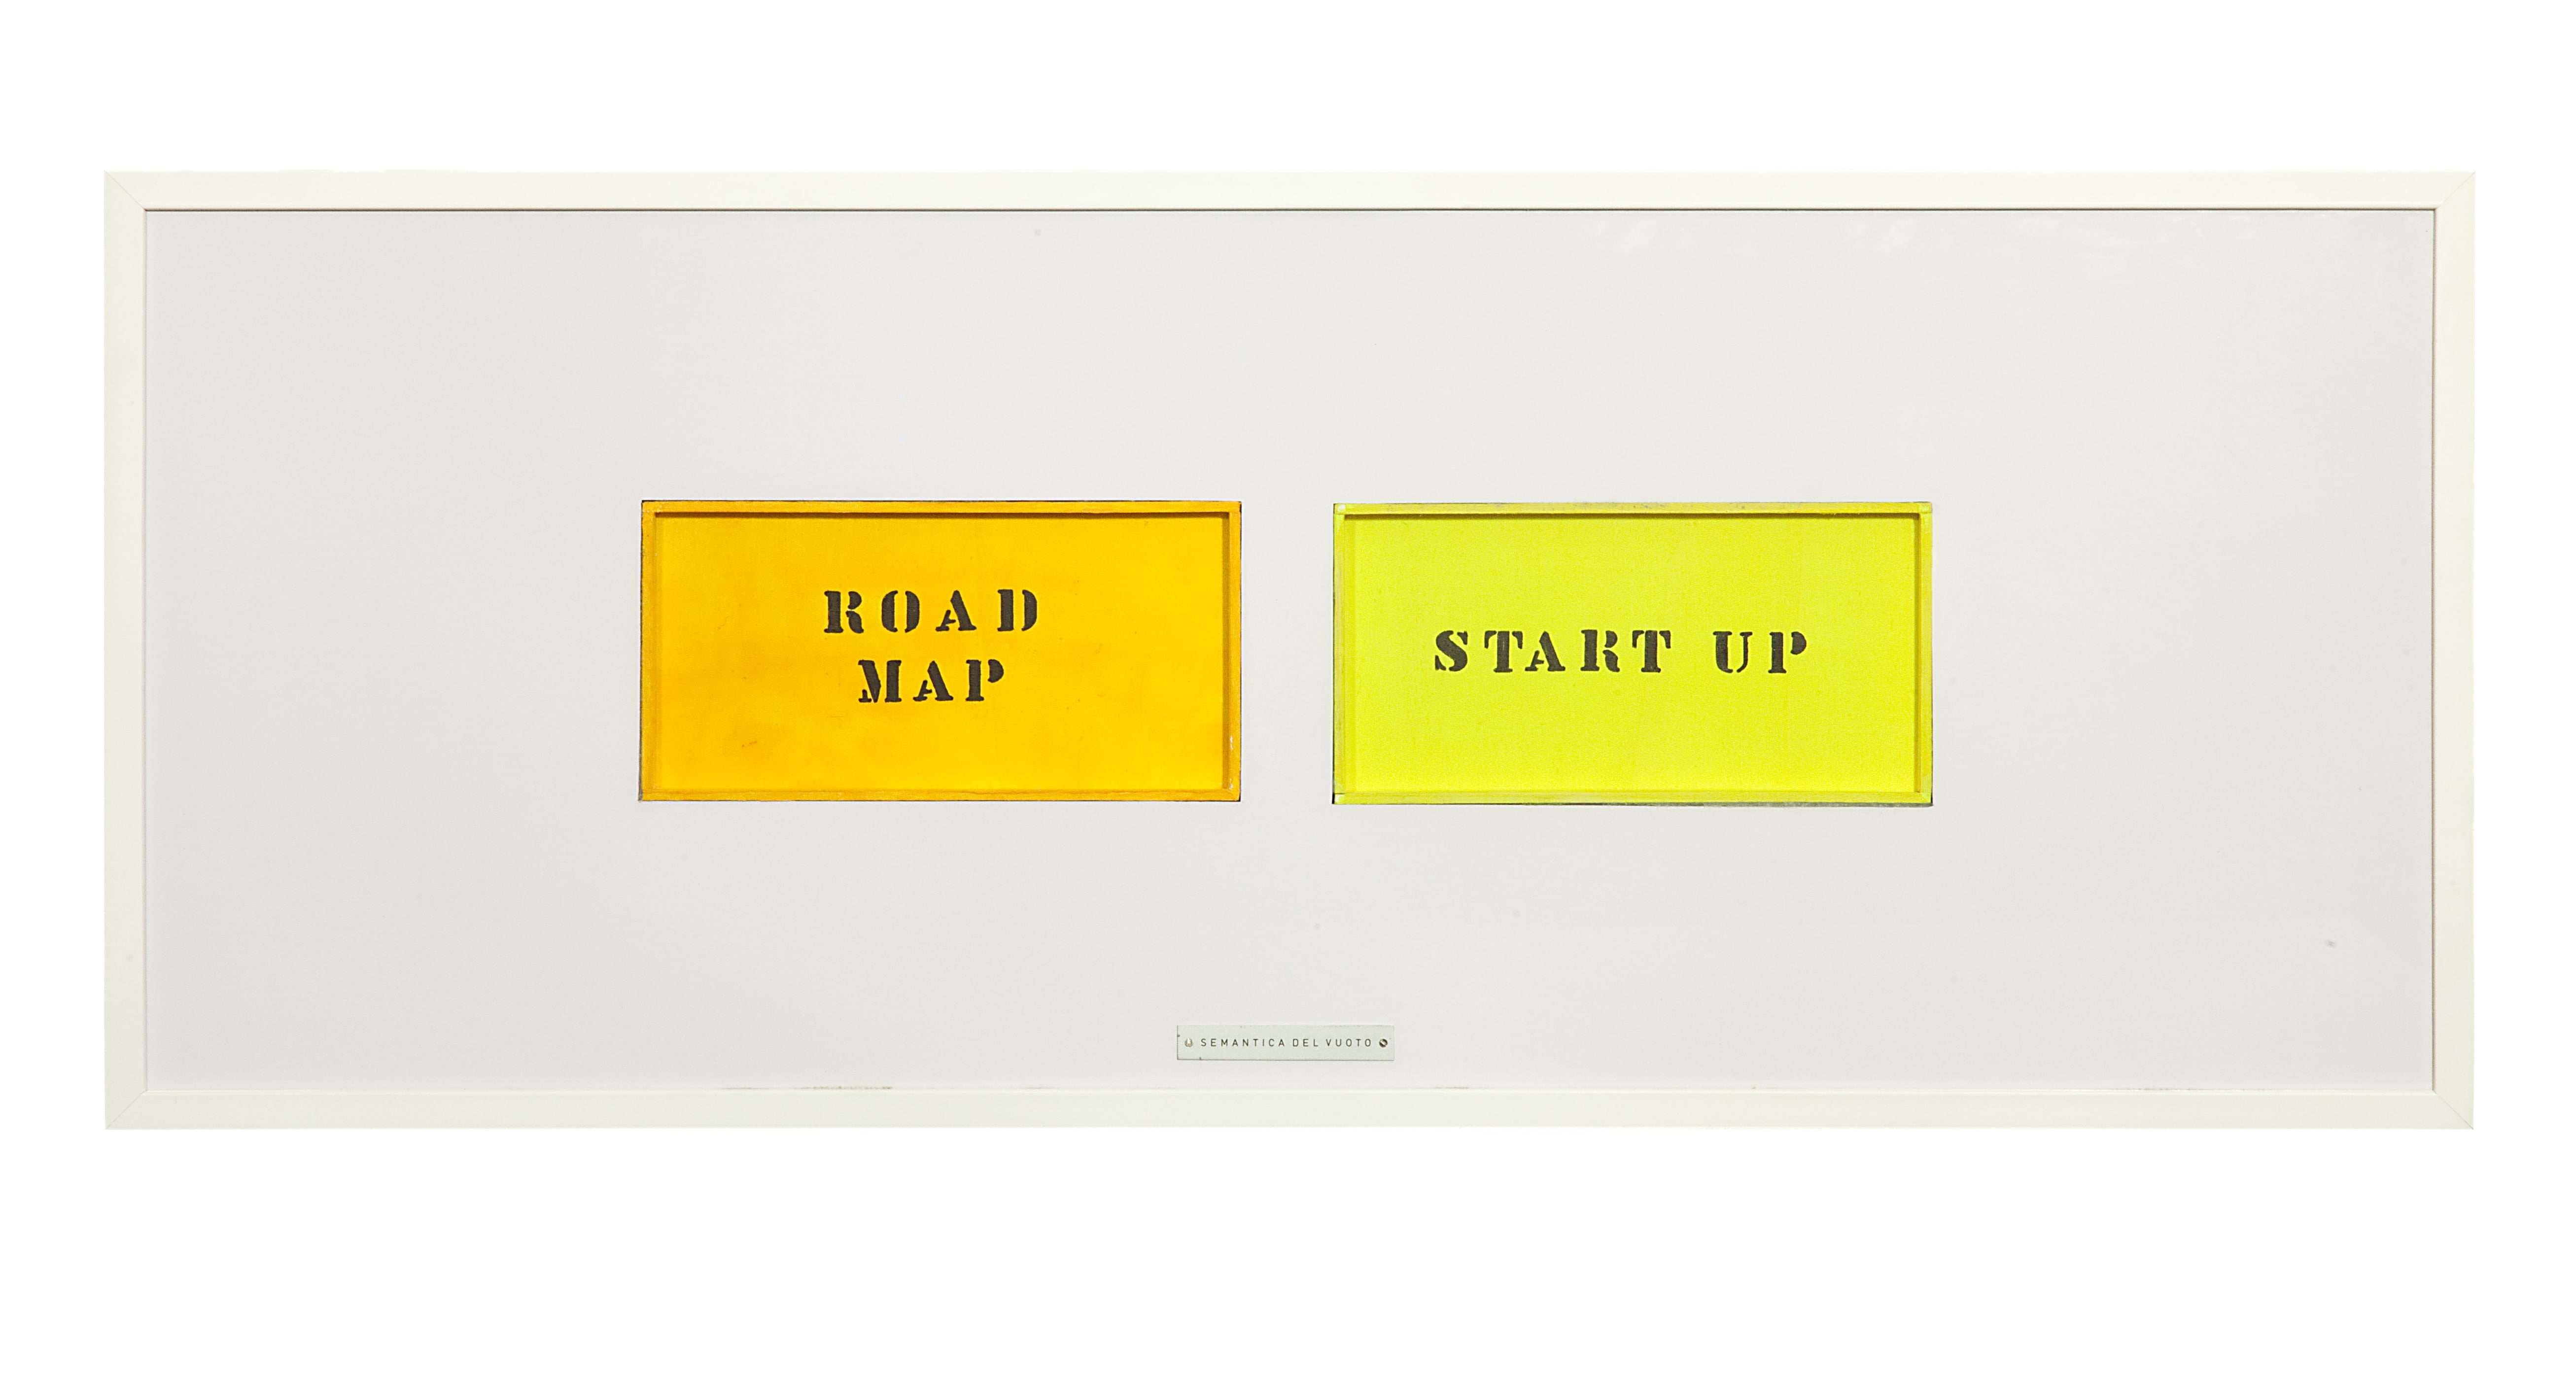 Road Map_Start Up